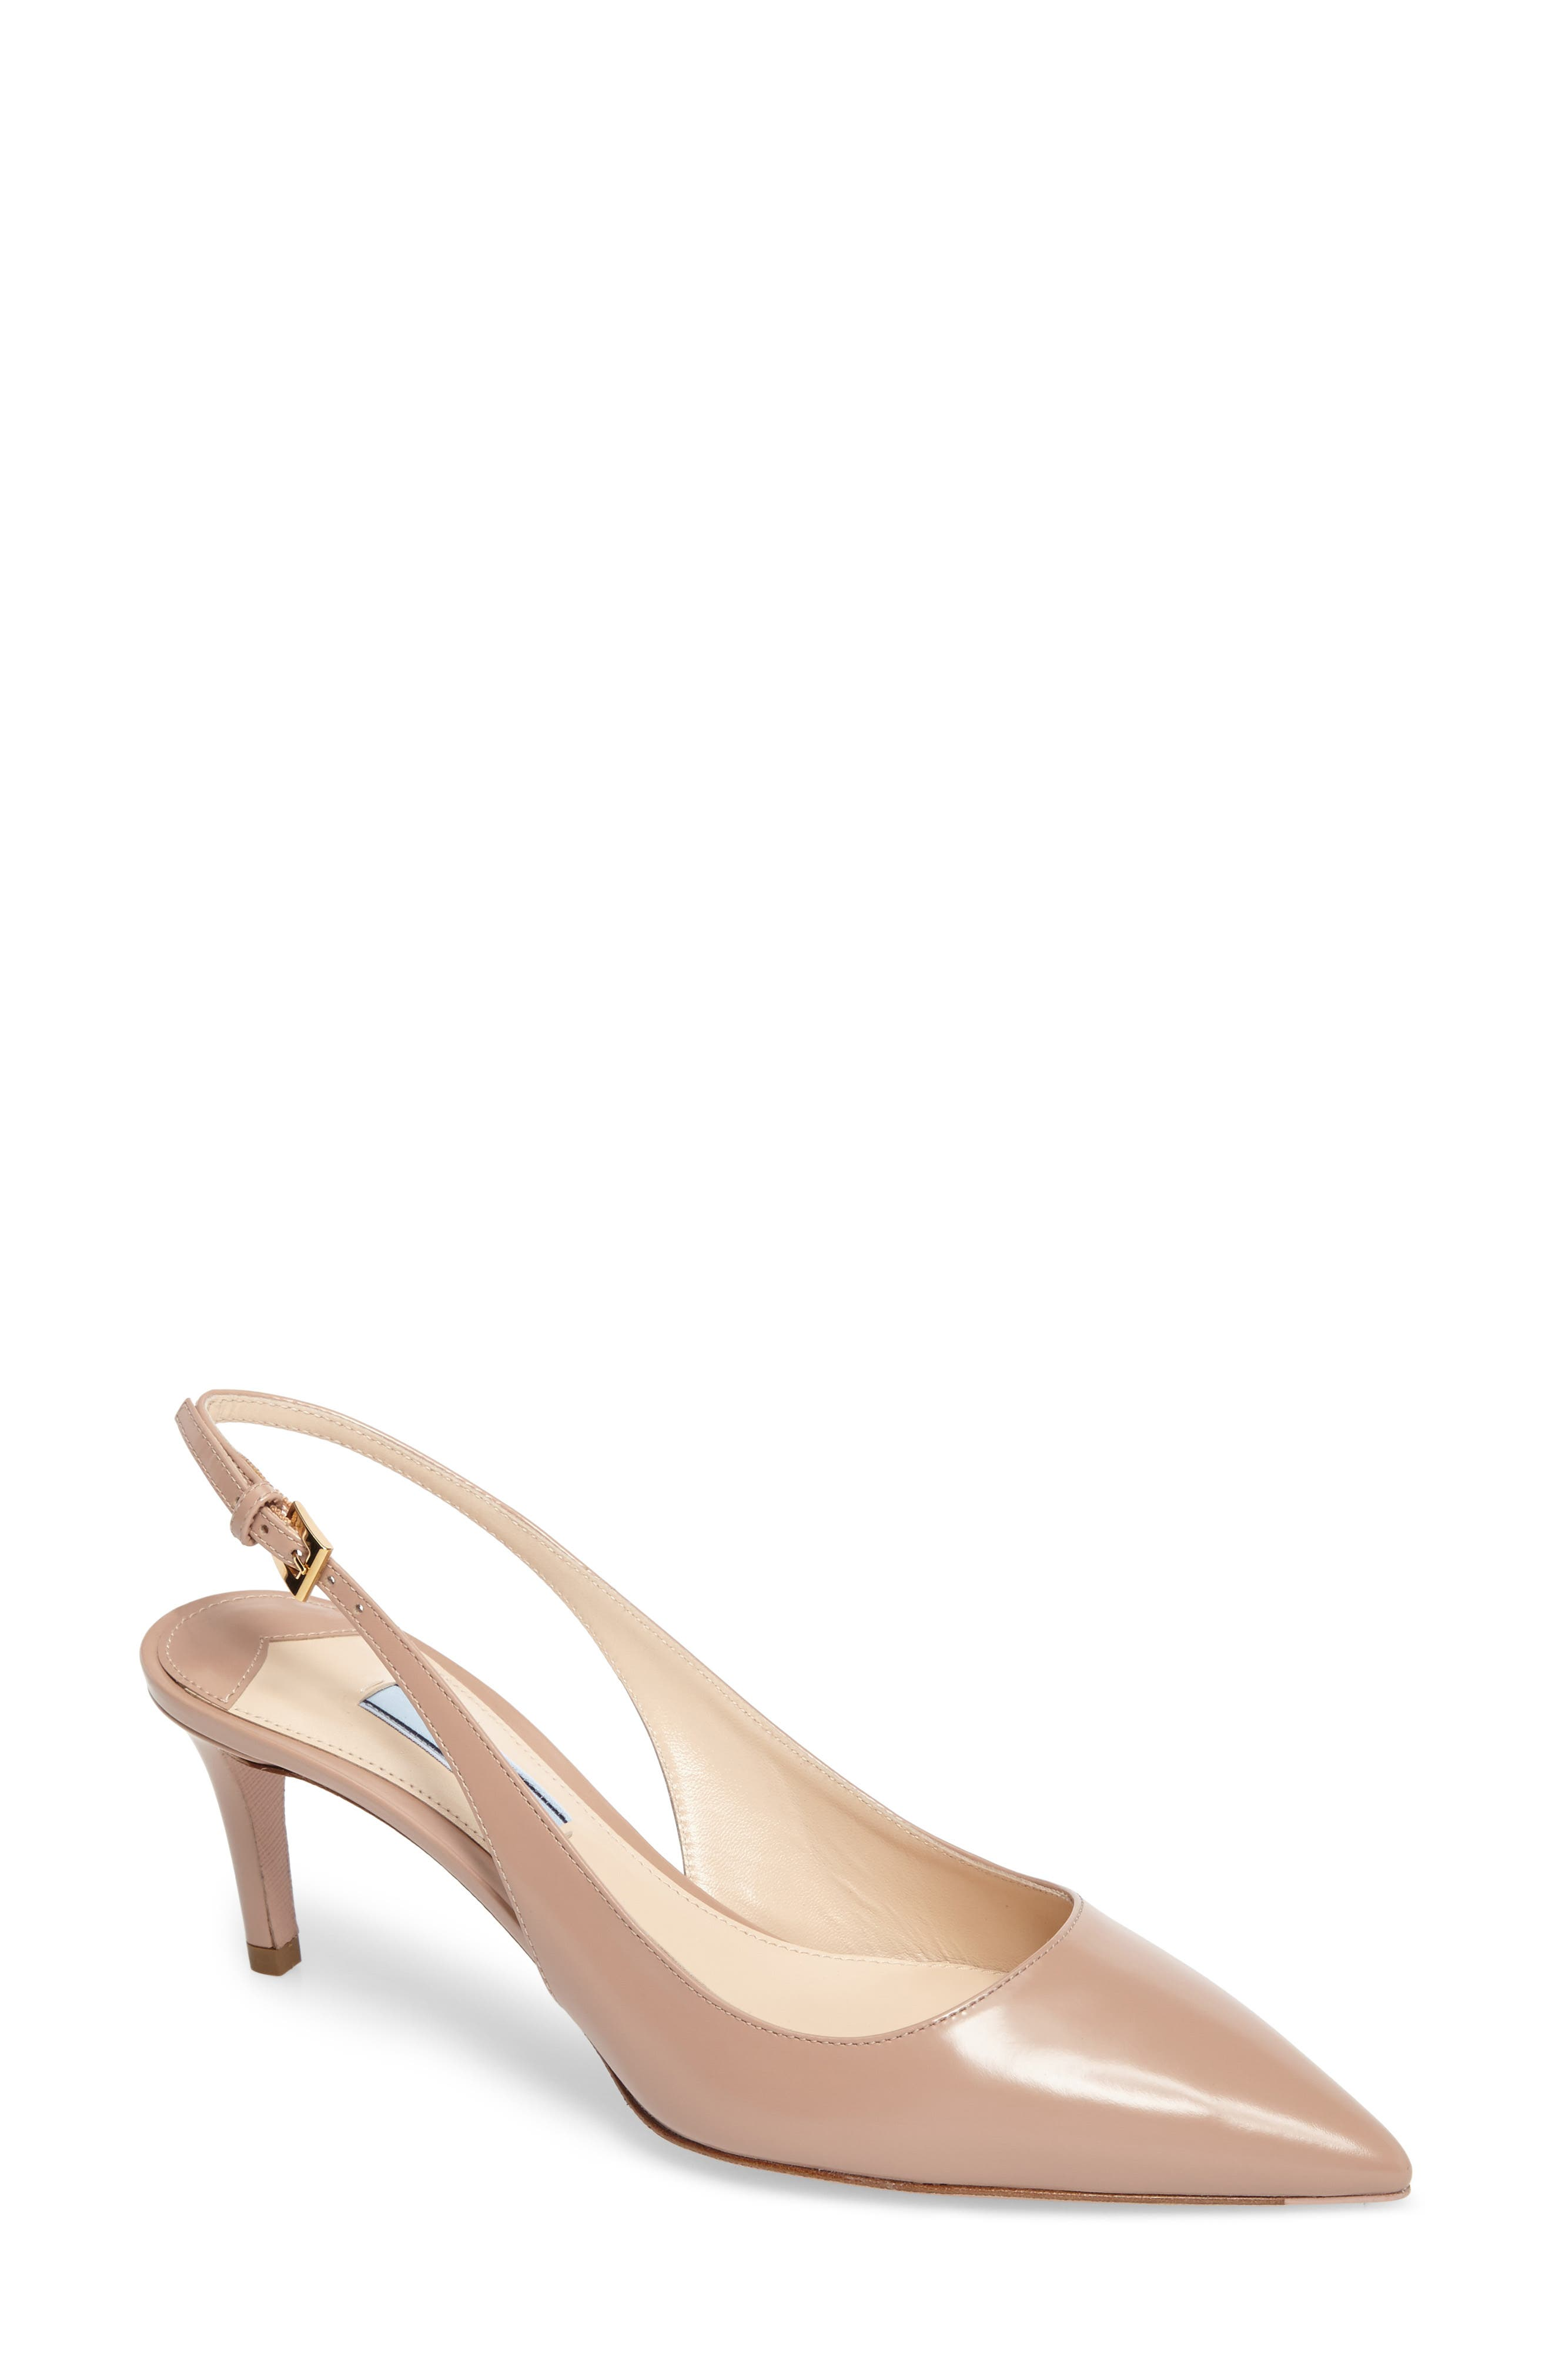 Alternate Image 1 Selected - Prada Slingback Pump (Women)